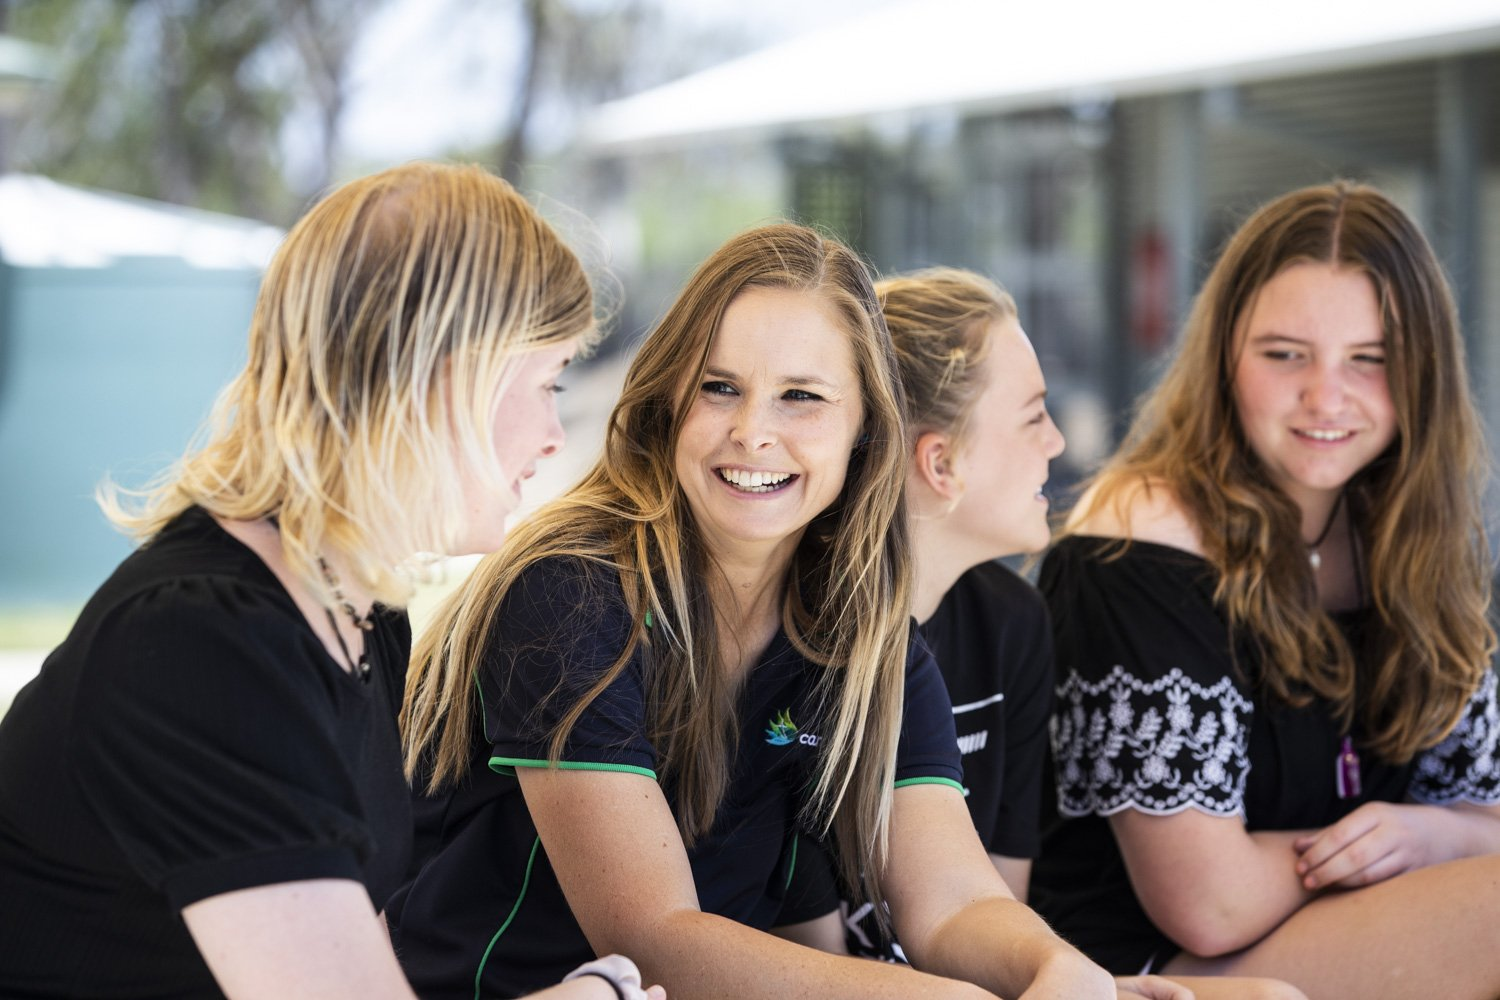 Carinity Education Rockhampton teacher Danielle New enjoys encouraging students to